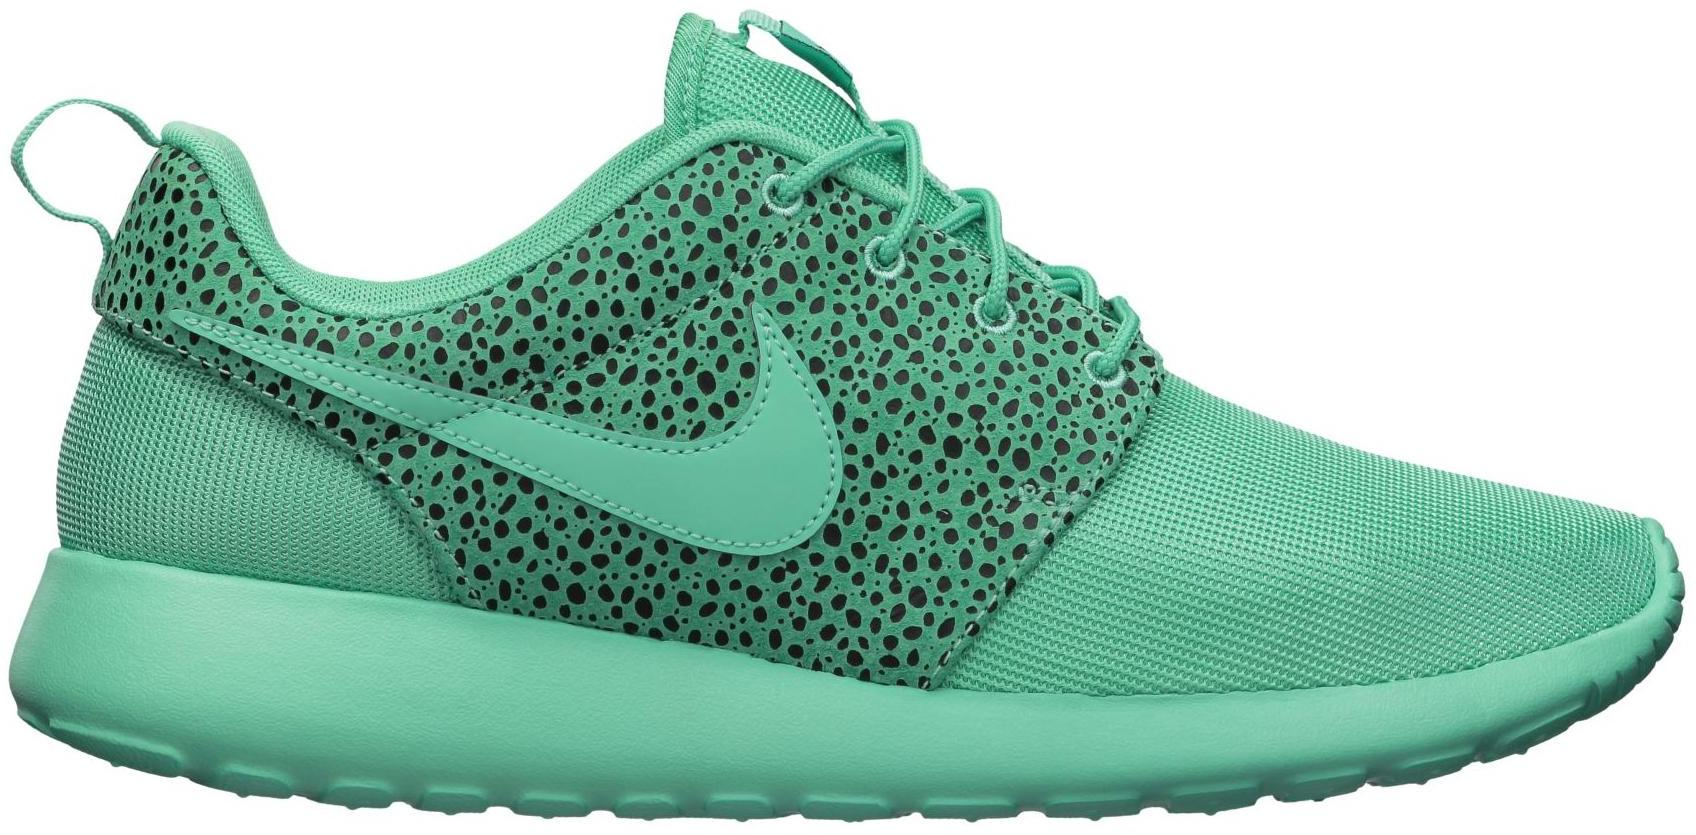 d0b87c7ad8bba greece nike roshe run womens shoes mint green white black c1c68 f34b9   release date nike roshe run safari crystal mint e3dc8 3a0d7